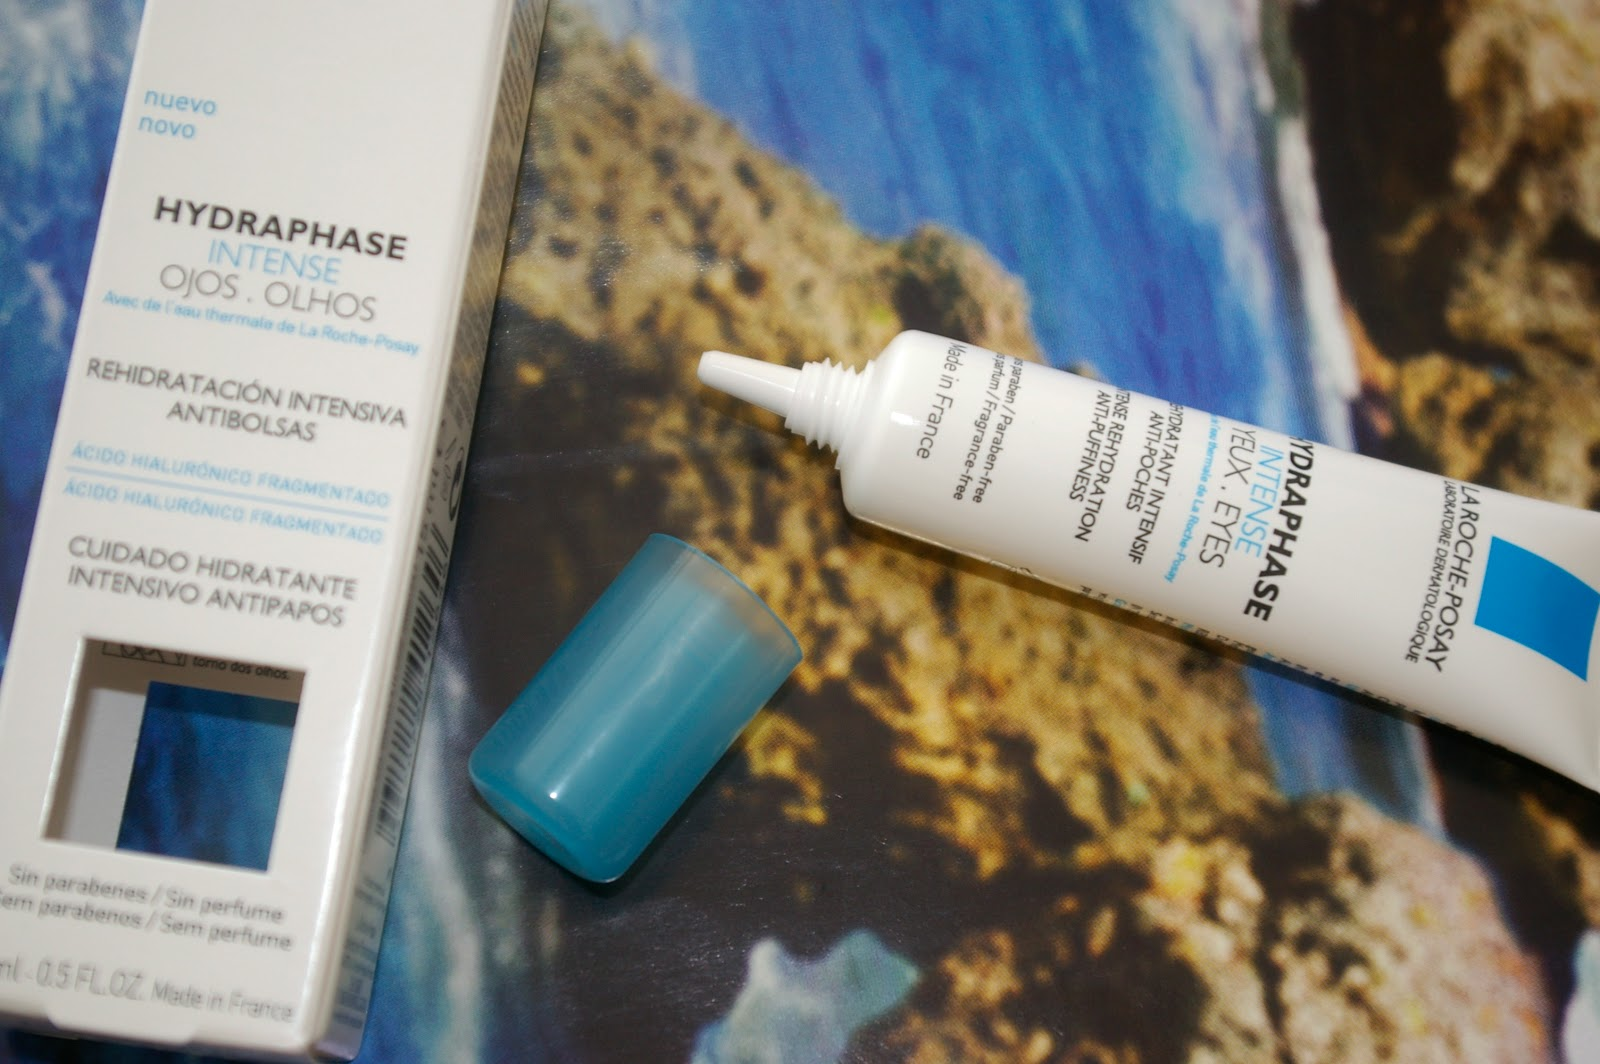 La Roche Posay Hydraphase Eyes review